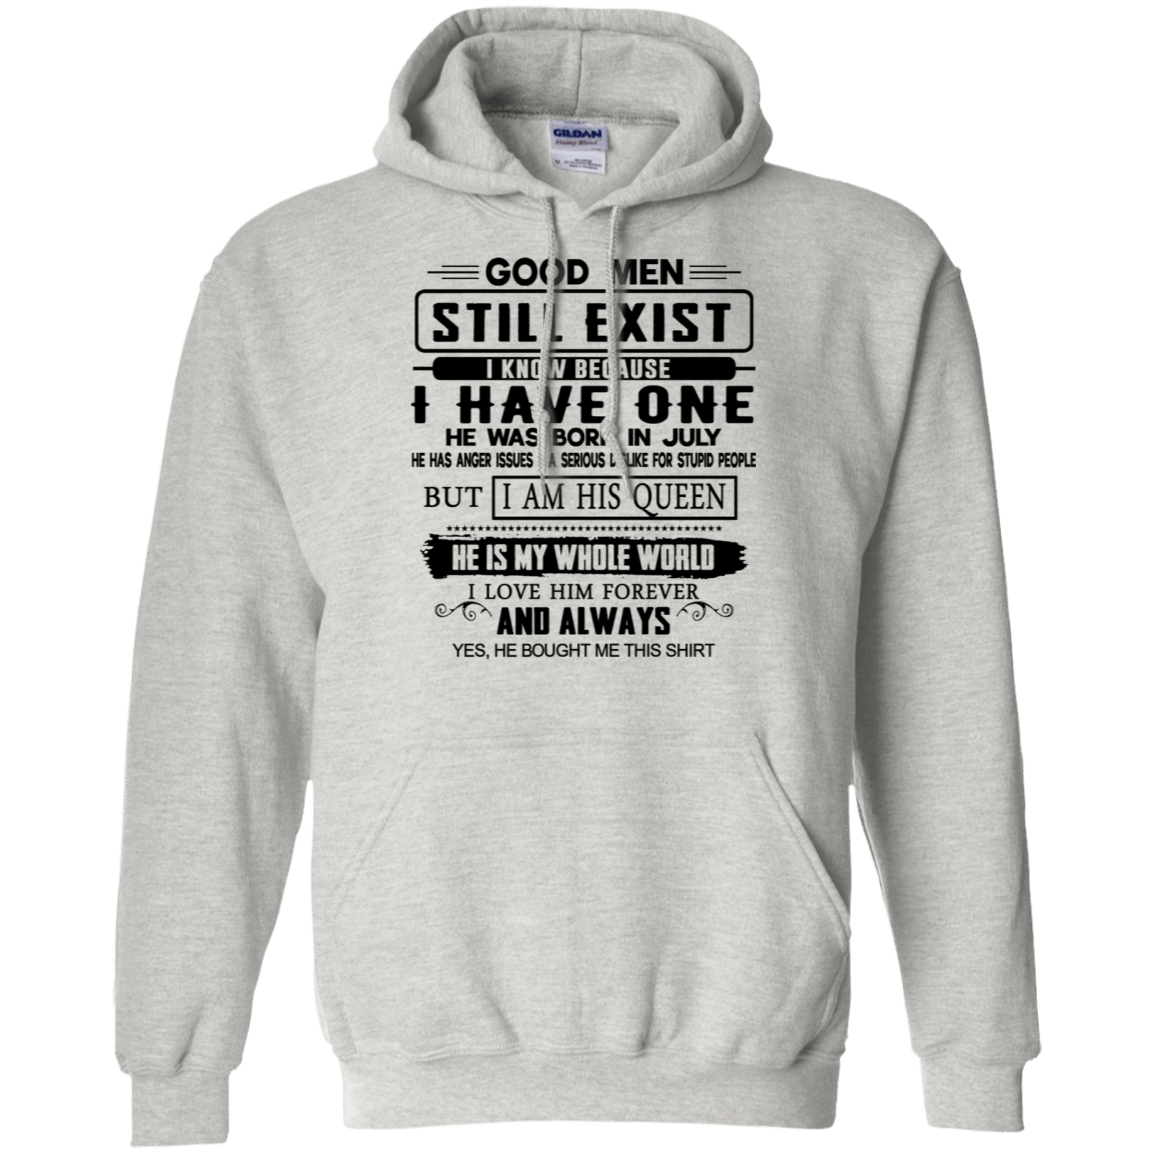 Good Men Still Exist I Have One He Was Born In July T-Shirts & Hoodies 541-4748-76215682-23071 - Tee Ript